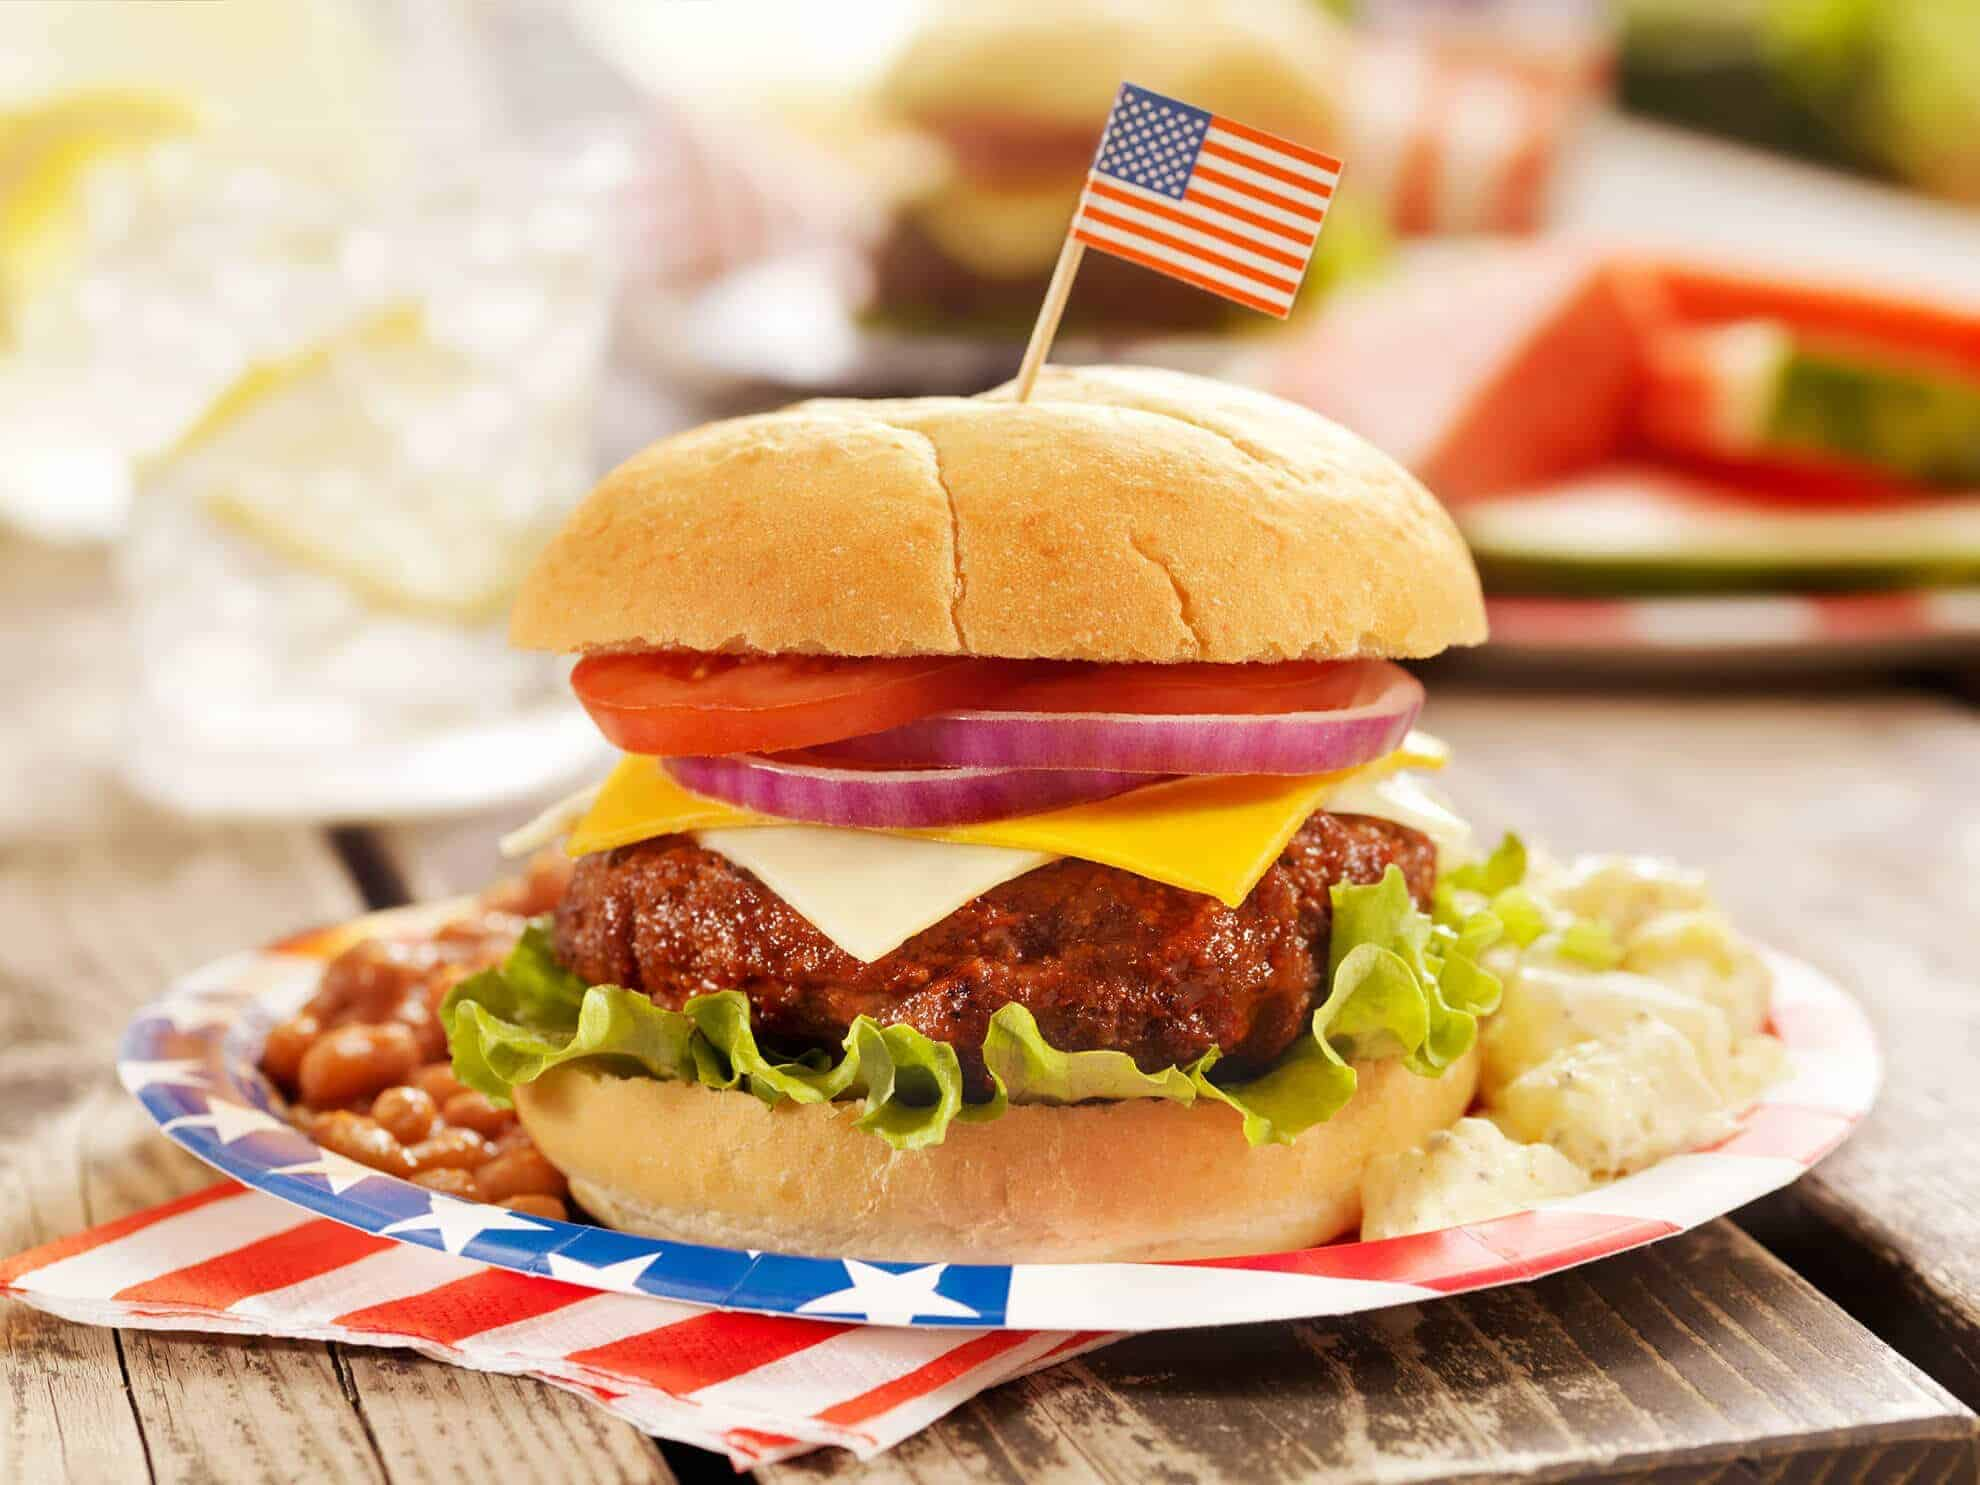 An all-American cheeseburger with lettuce, tomato, pickles, an American flag toothpick on an America plate with an America napkin